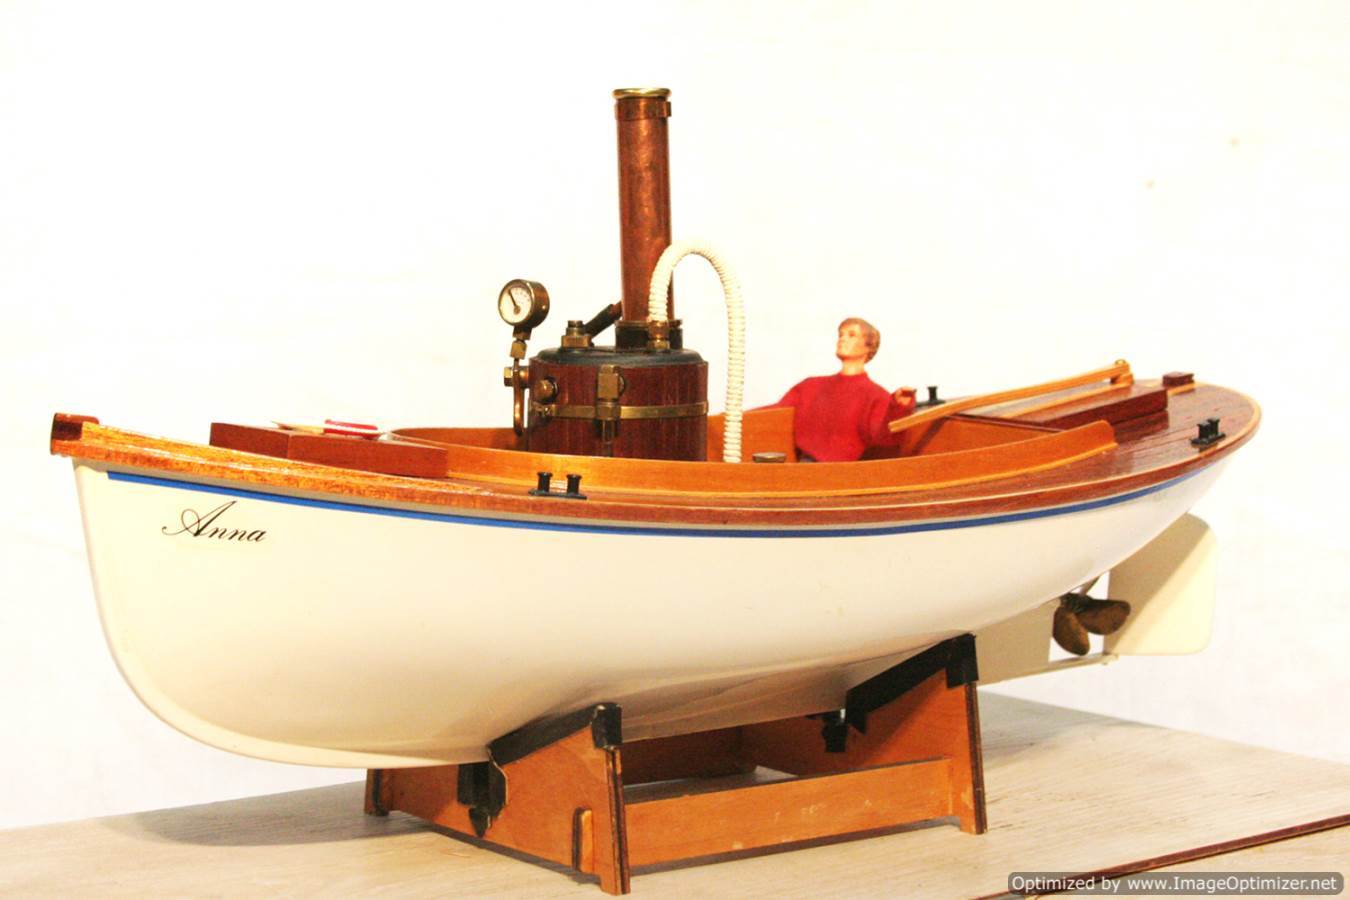 test anna-cheddar-steam-boat-live-steam-model-for-sale-11-optimized